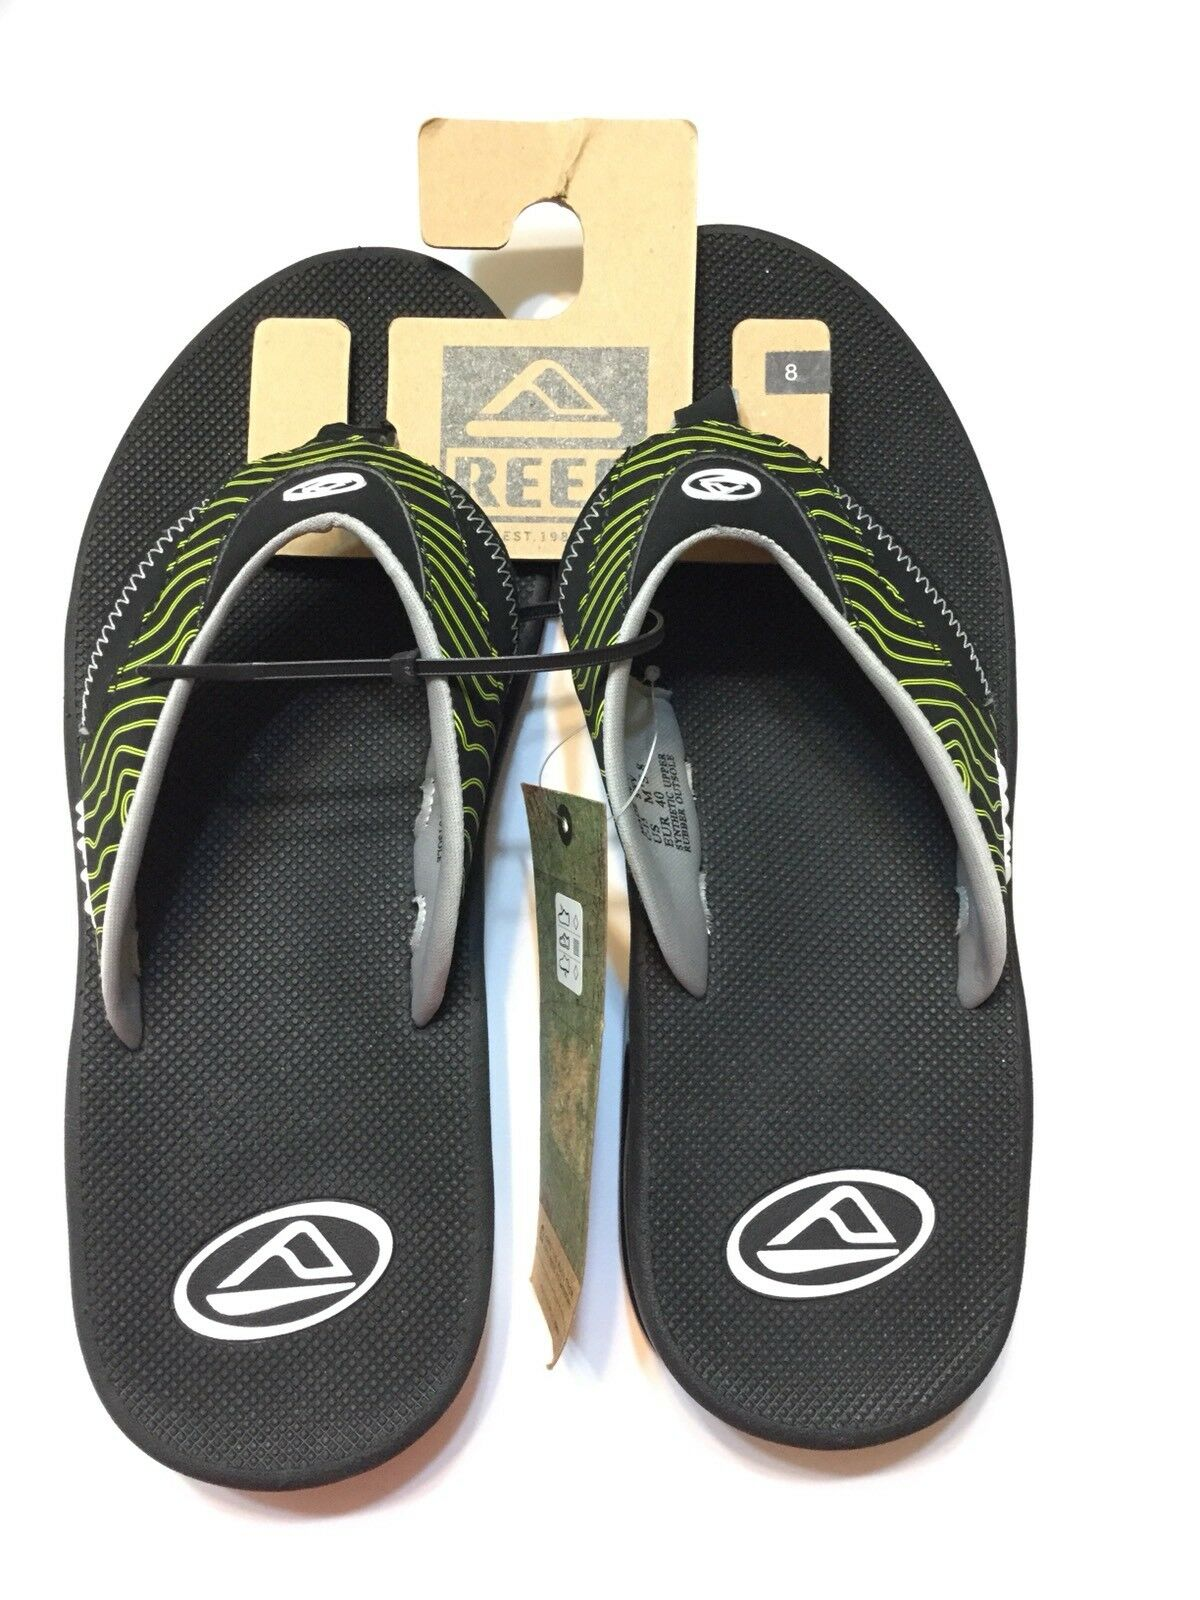 15051a660759 REEF MENS SANDALS FANNING Black Geen SIZE US US US 8 752707 - boxing ...